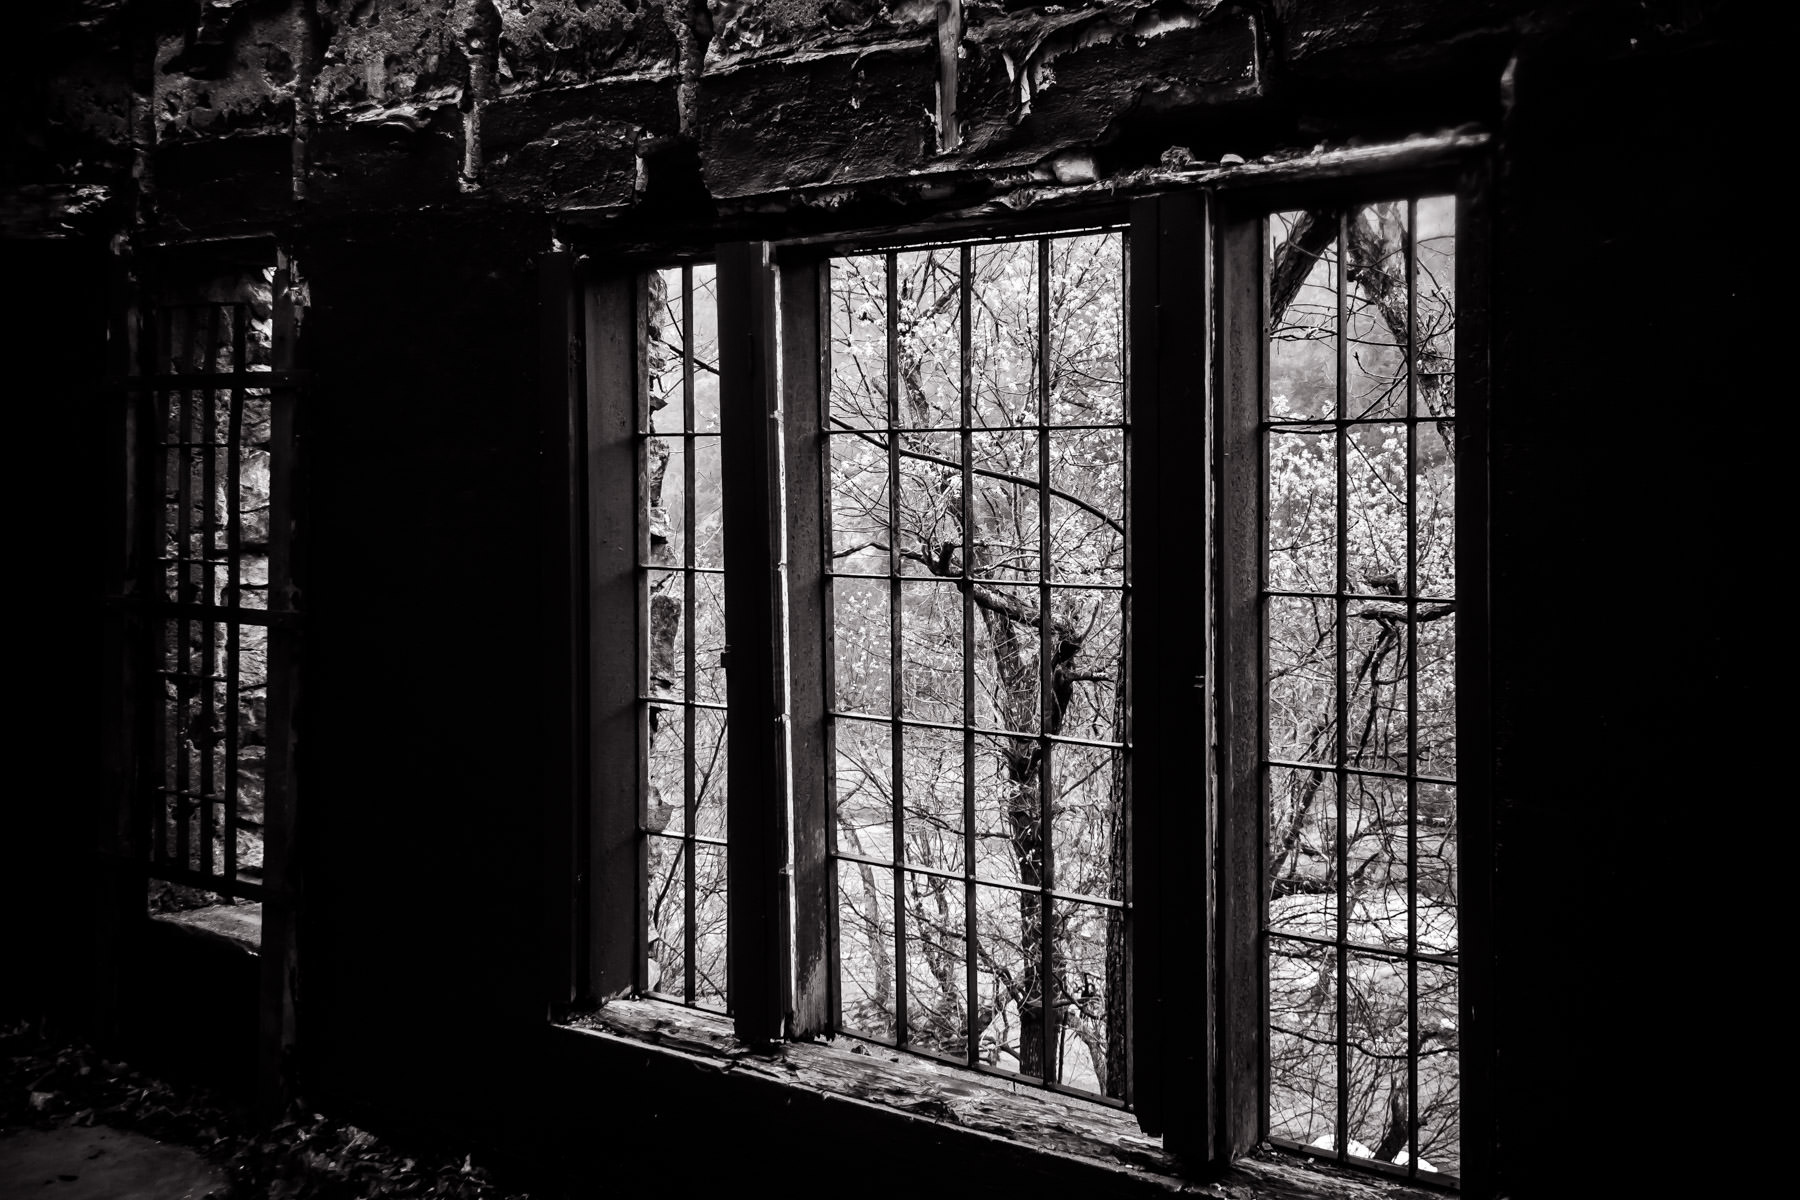 A window at an abandoned holiday cabin at Turner Falls Park, Oklahoma.